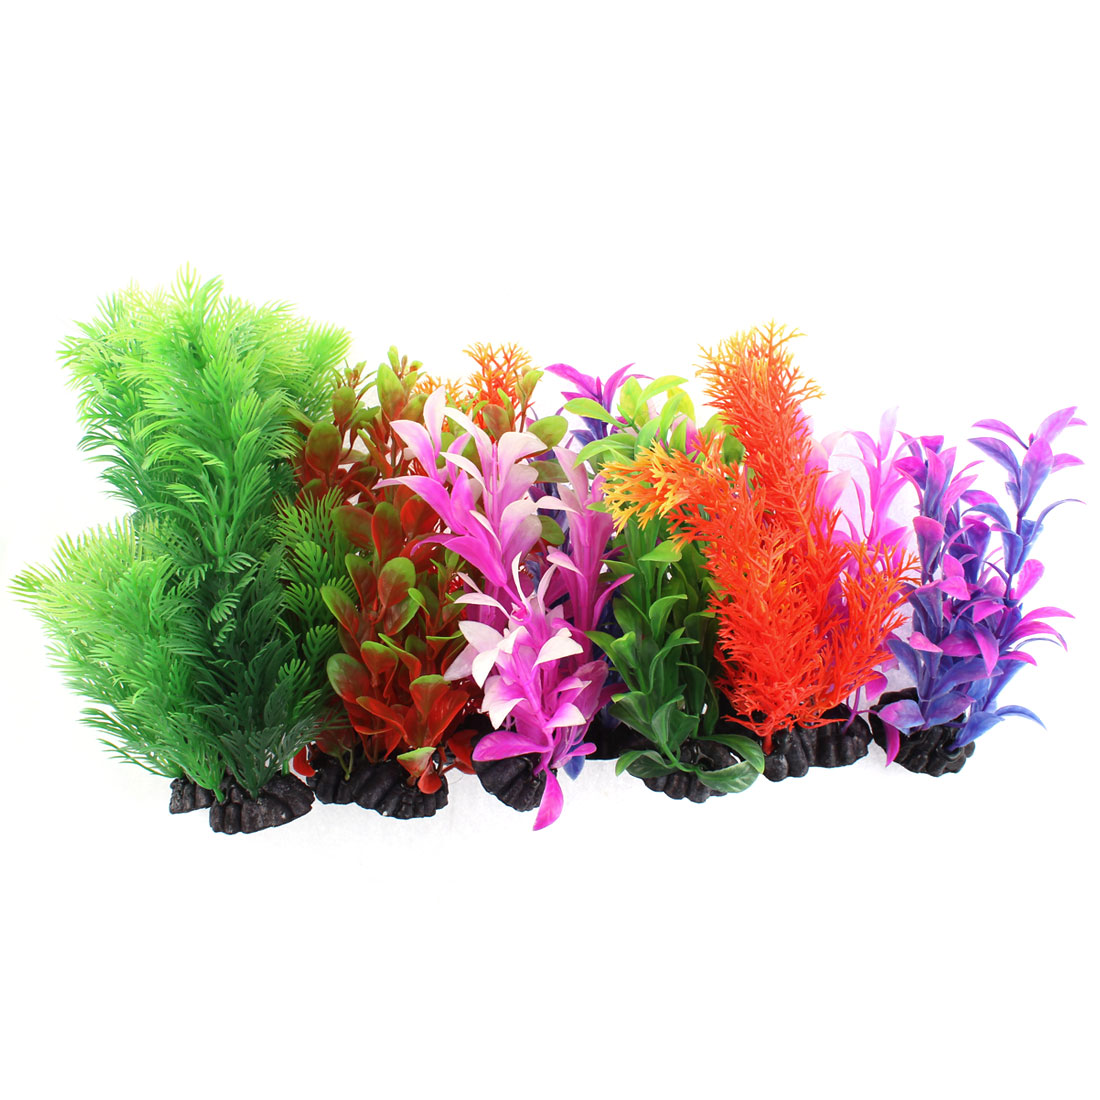 Aquarium Plastic Aquascaping Underwater Plant Adornment 12 in 1